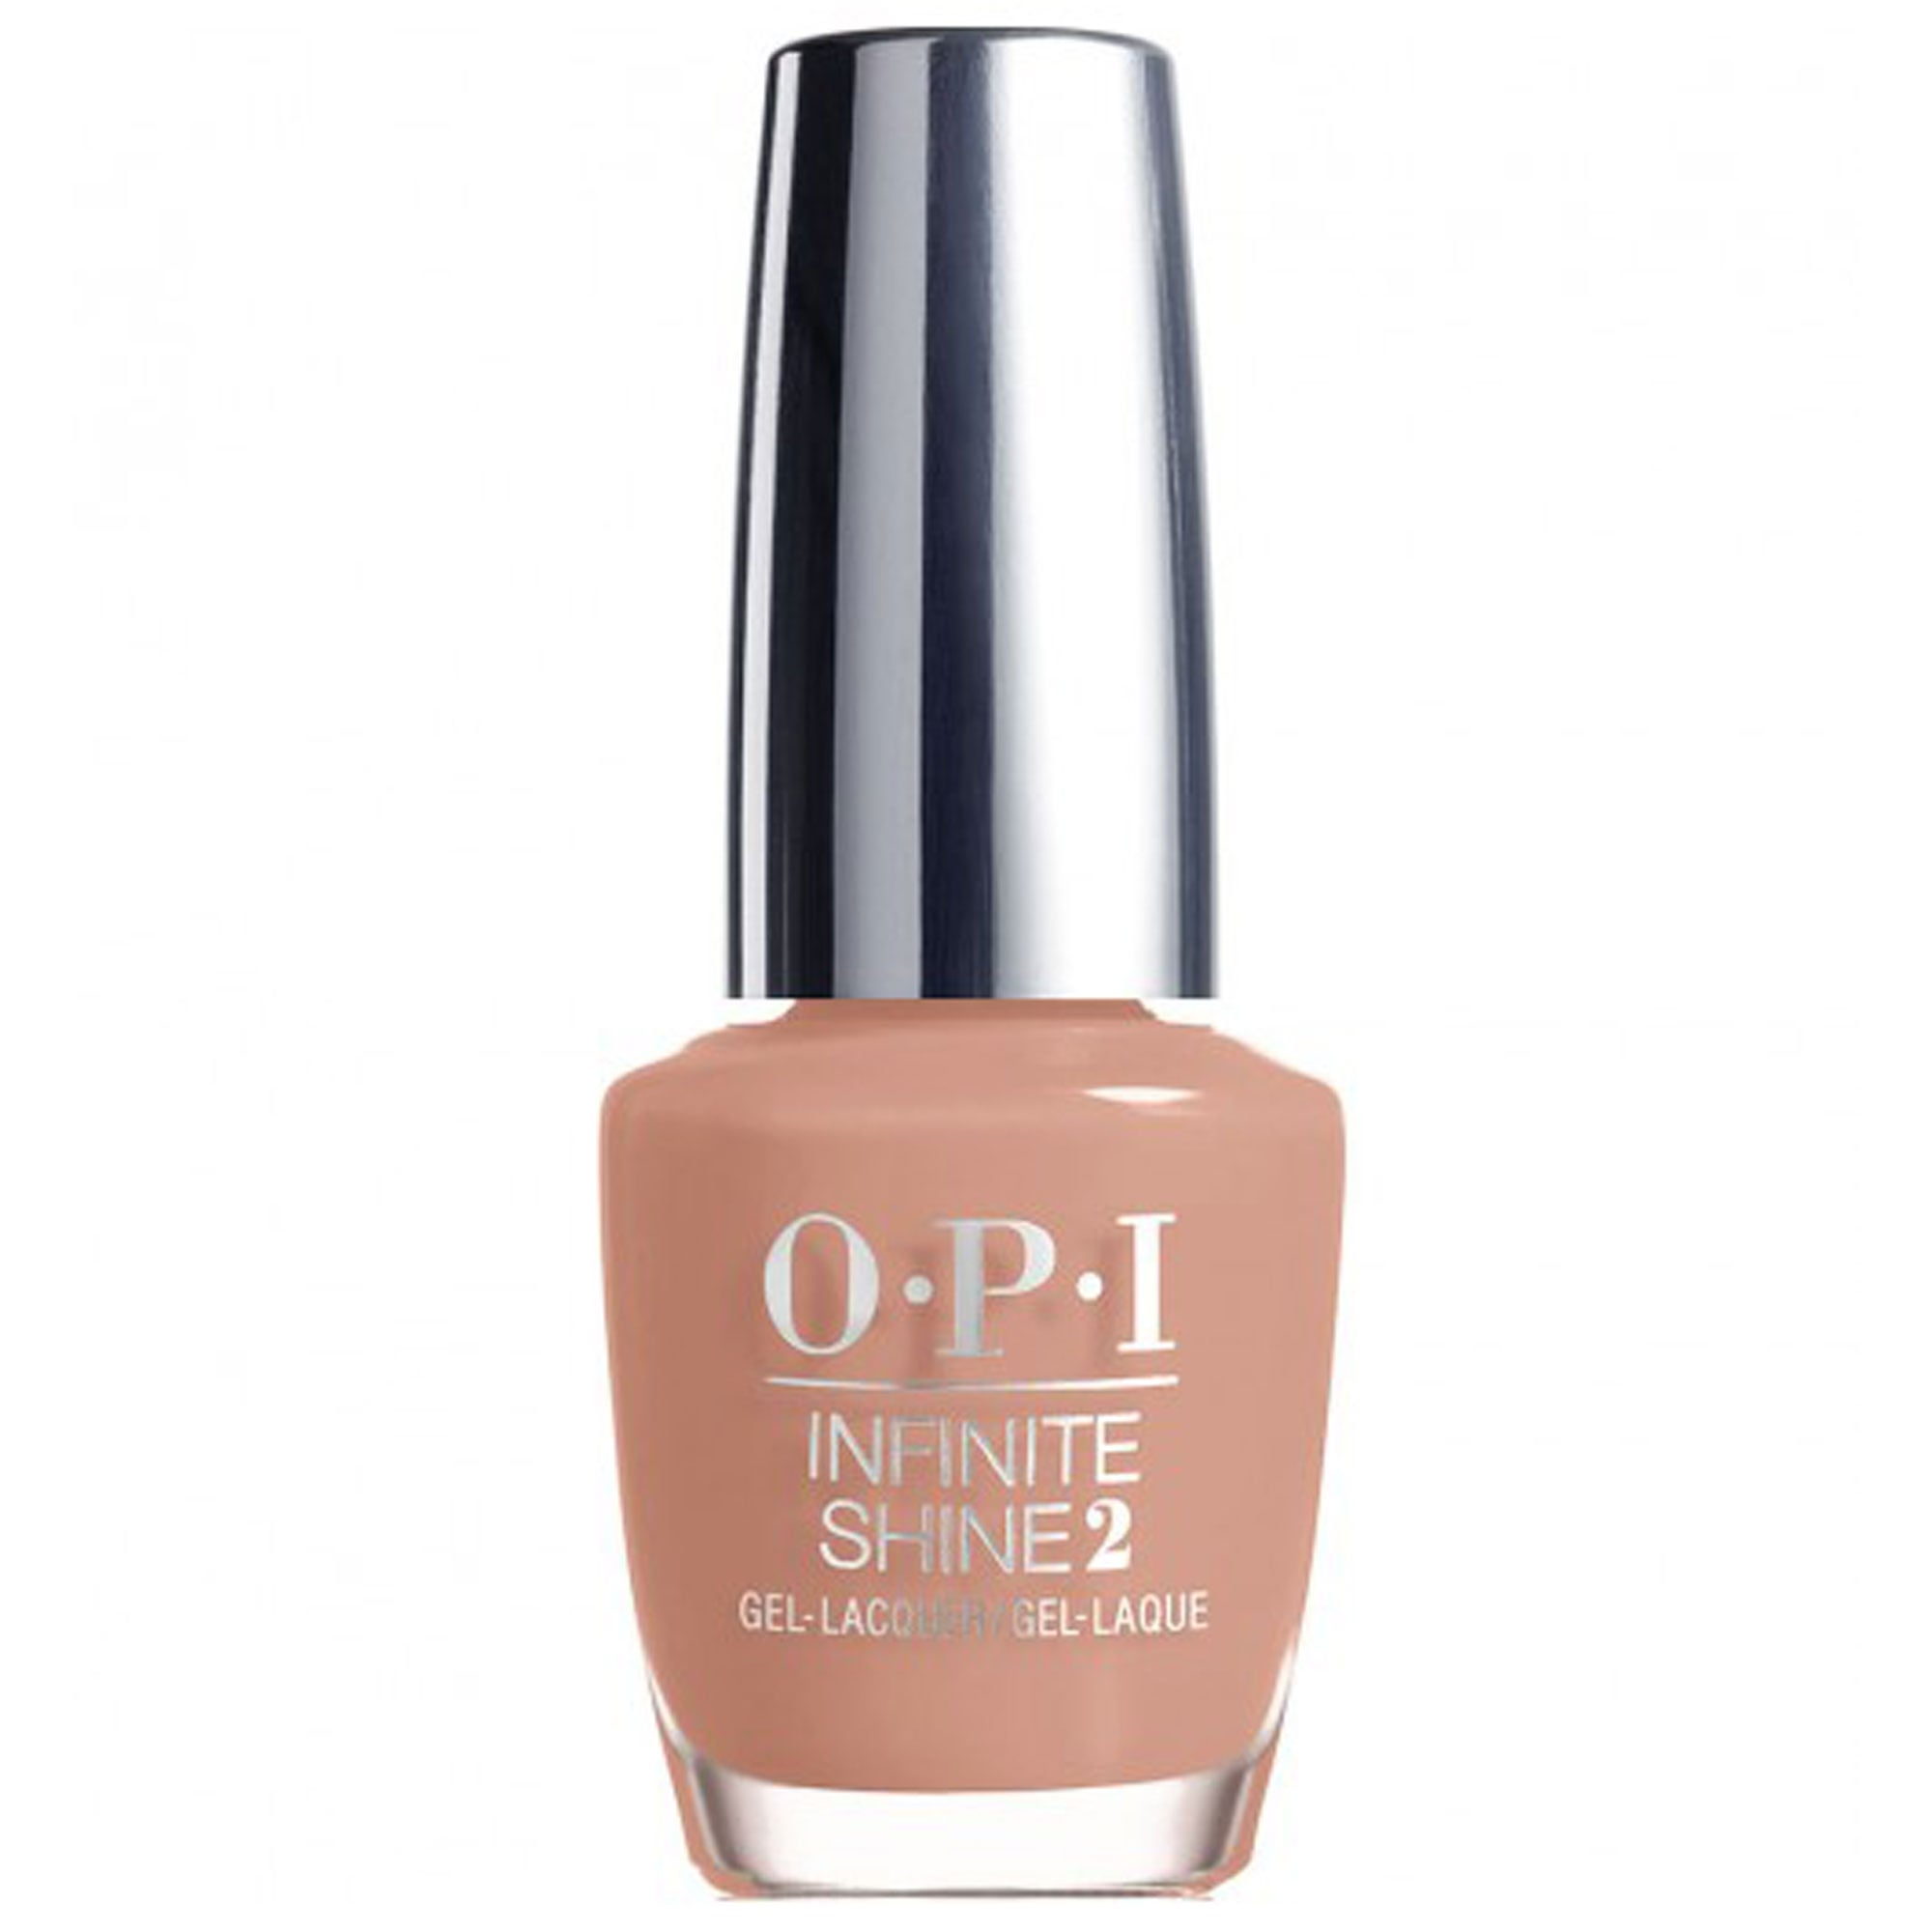 OPI Infinite Shine New Nudes Nail Lacquer No Stopping Zone